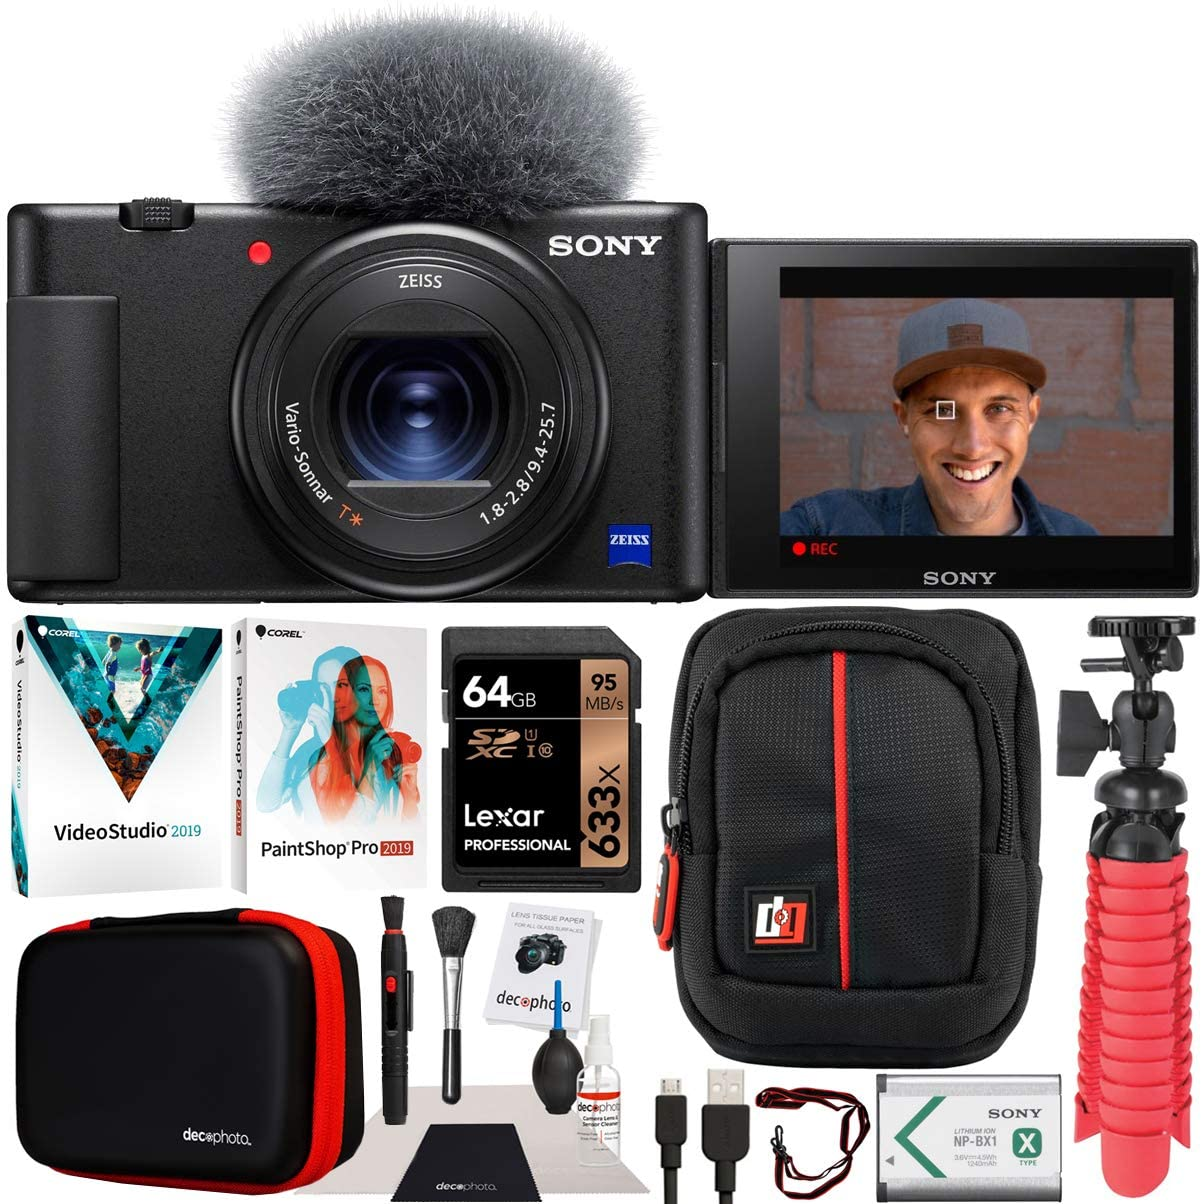 Sony ZV-1 Compact Digital Vlogging 4K HDR Video Camera for Content Creators & Vloggers DCZV1/B Bundle with Deco Gear Case + Software Kit + 64GB Card + Compact Tripod/Handheld Grip and Accessories